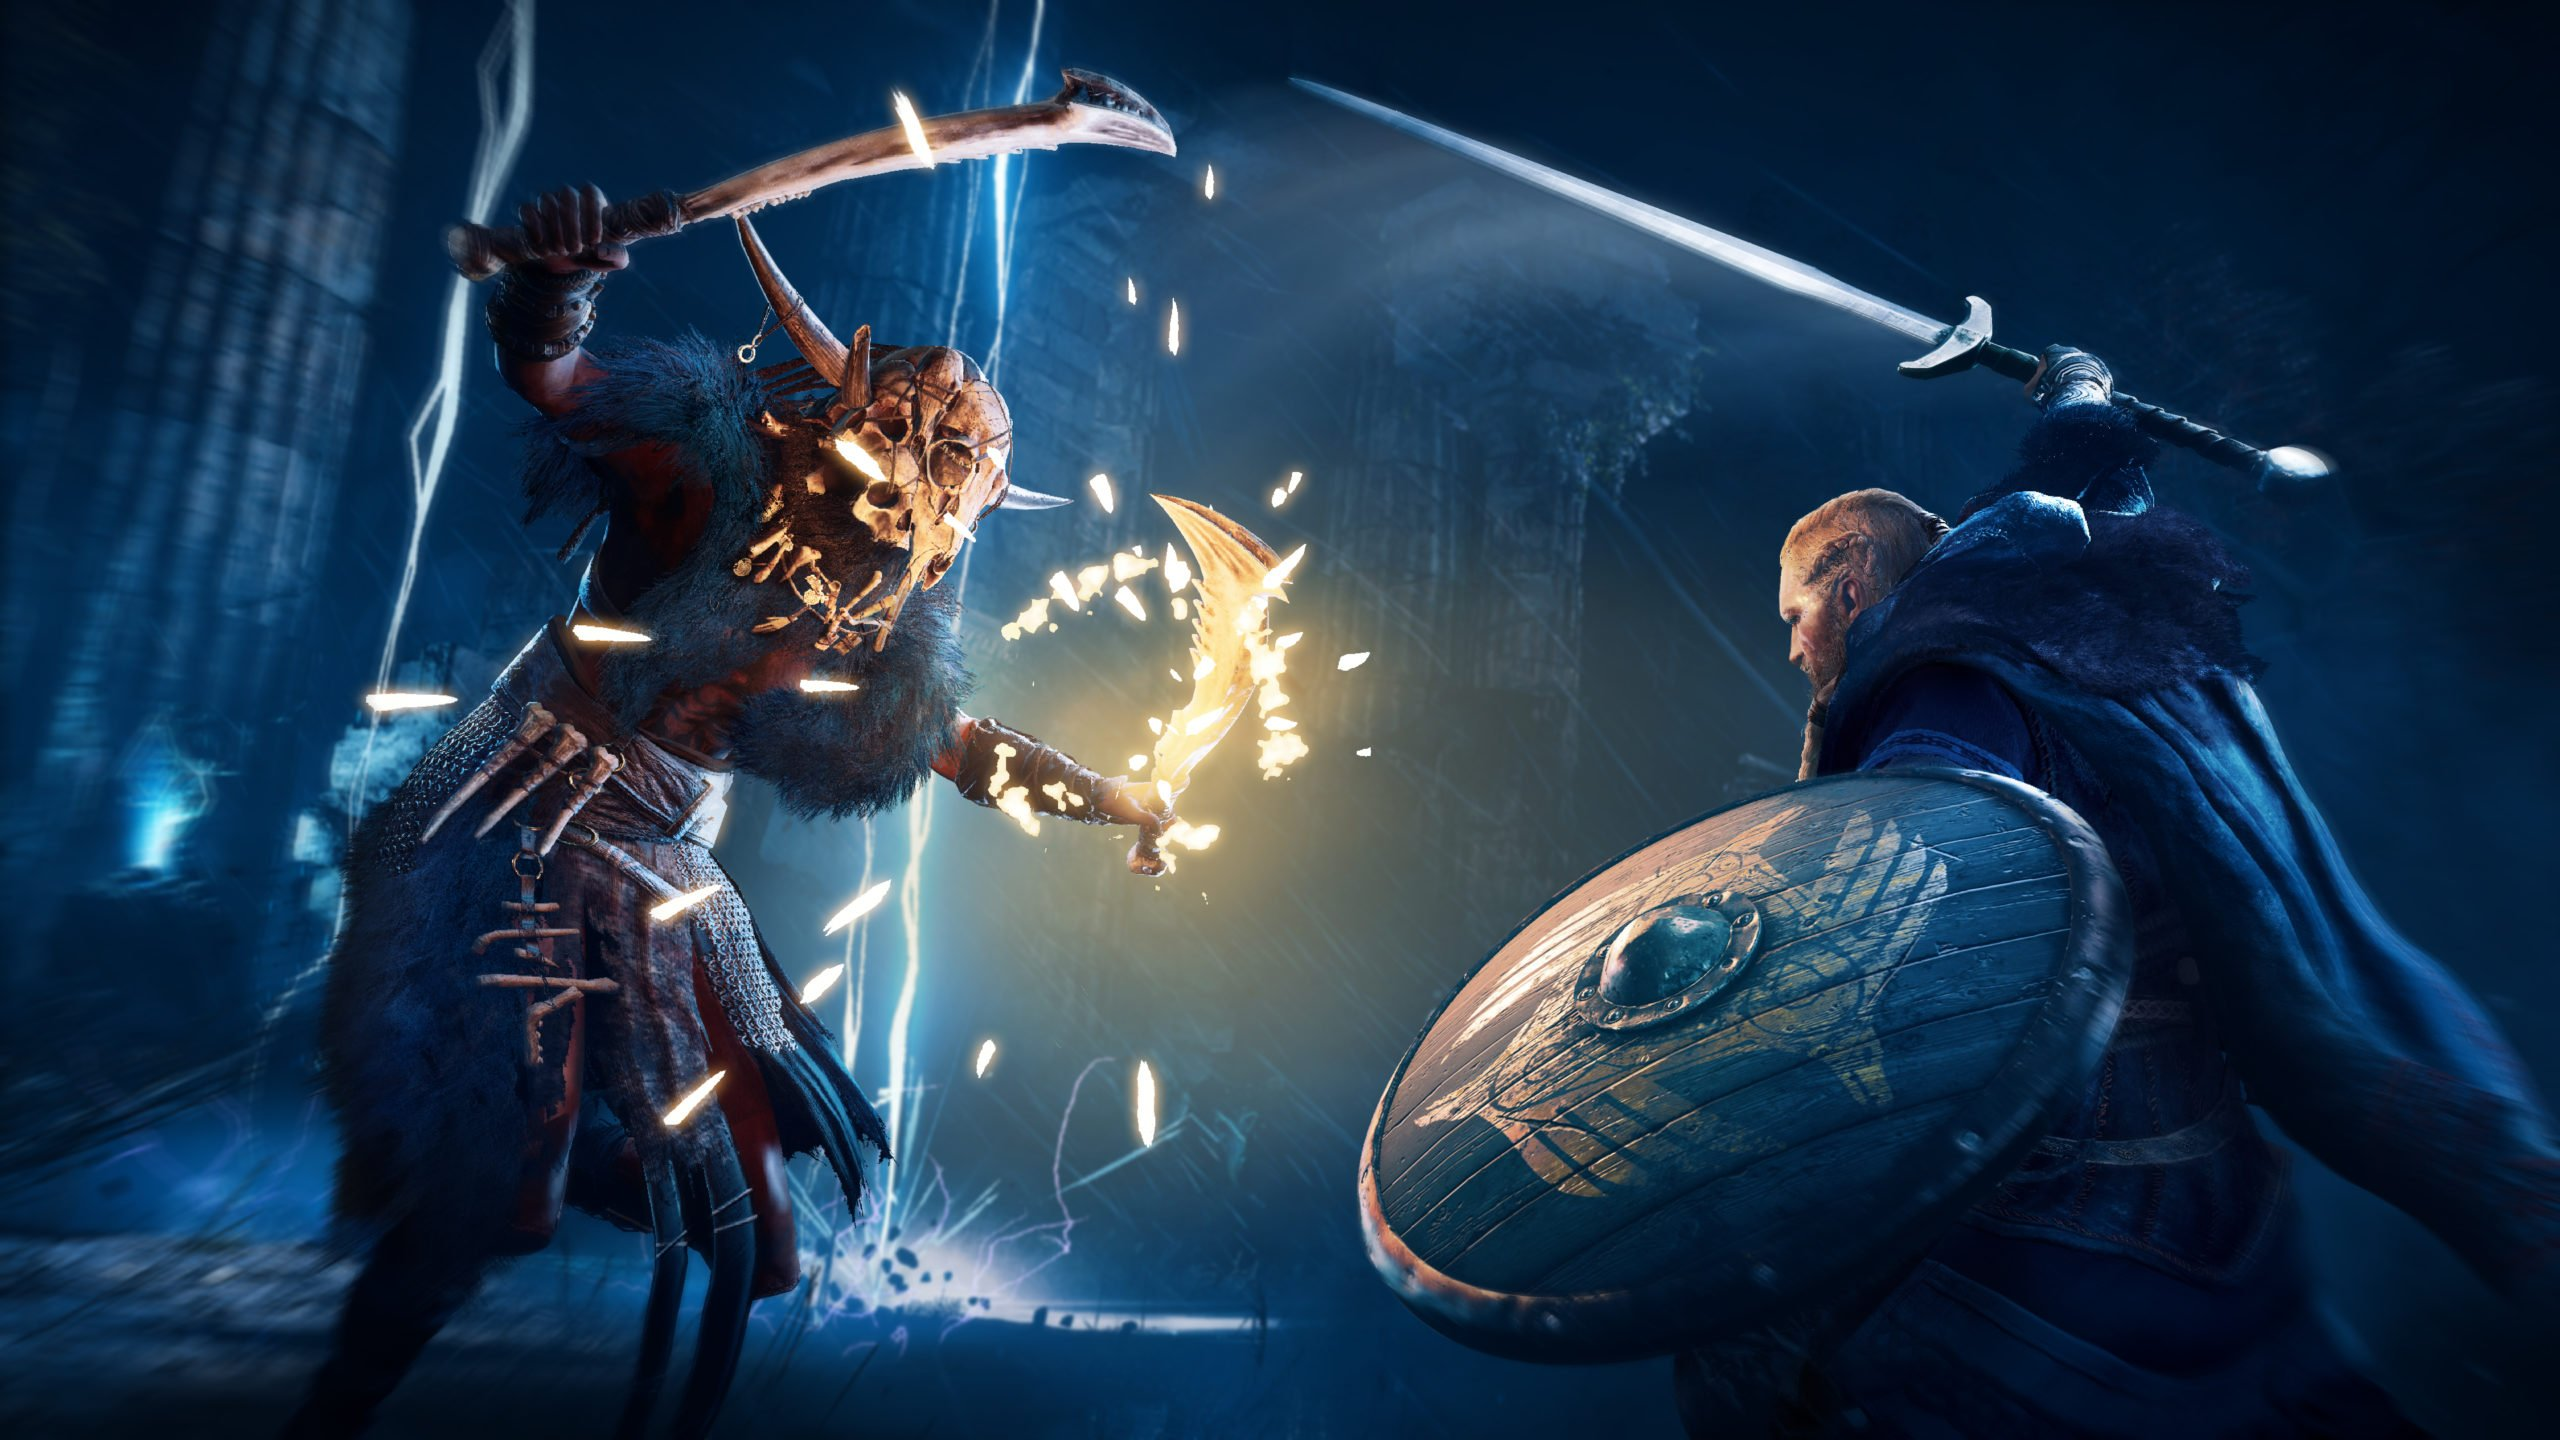 Hands On Assassin S Creed Valhalla Feels Like A Return To The Series Roots Vgc